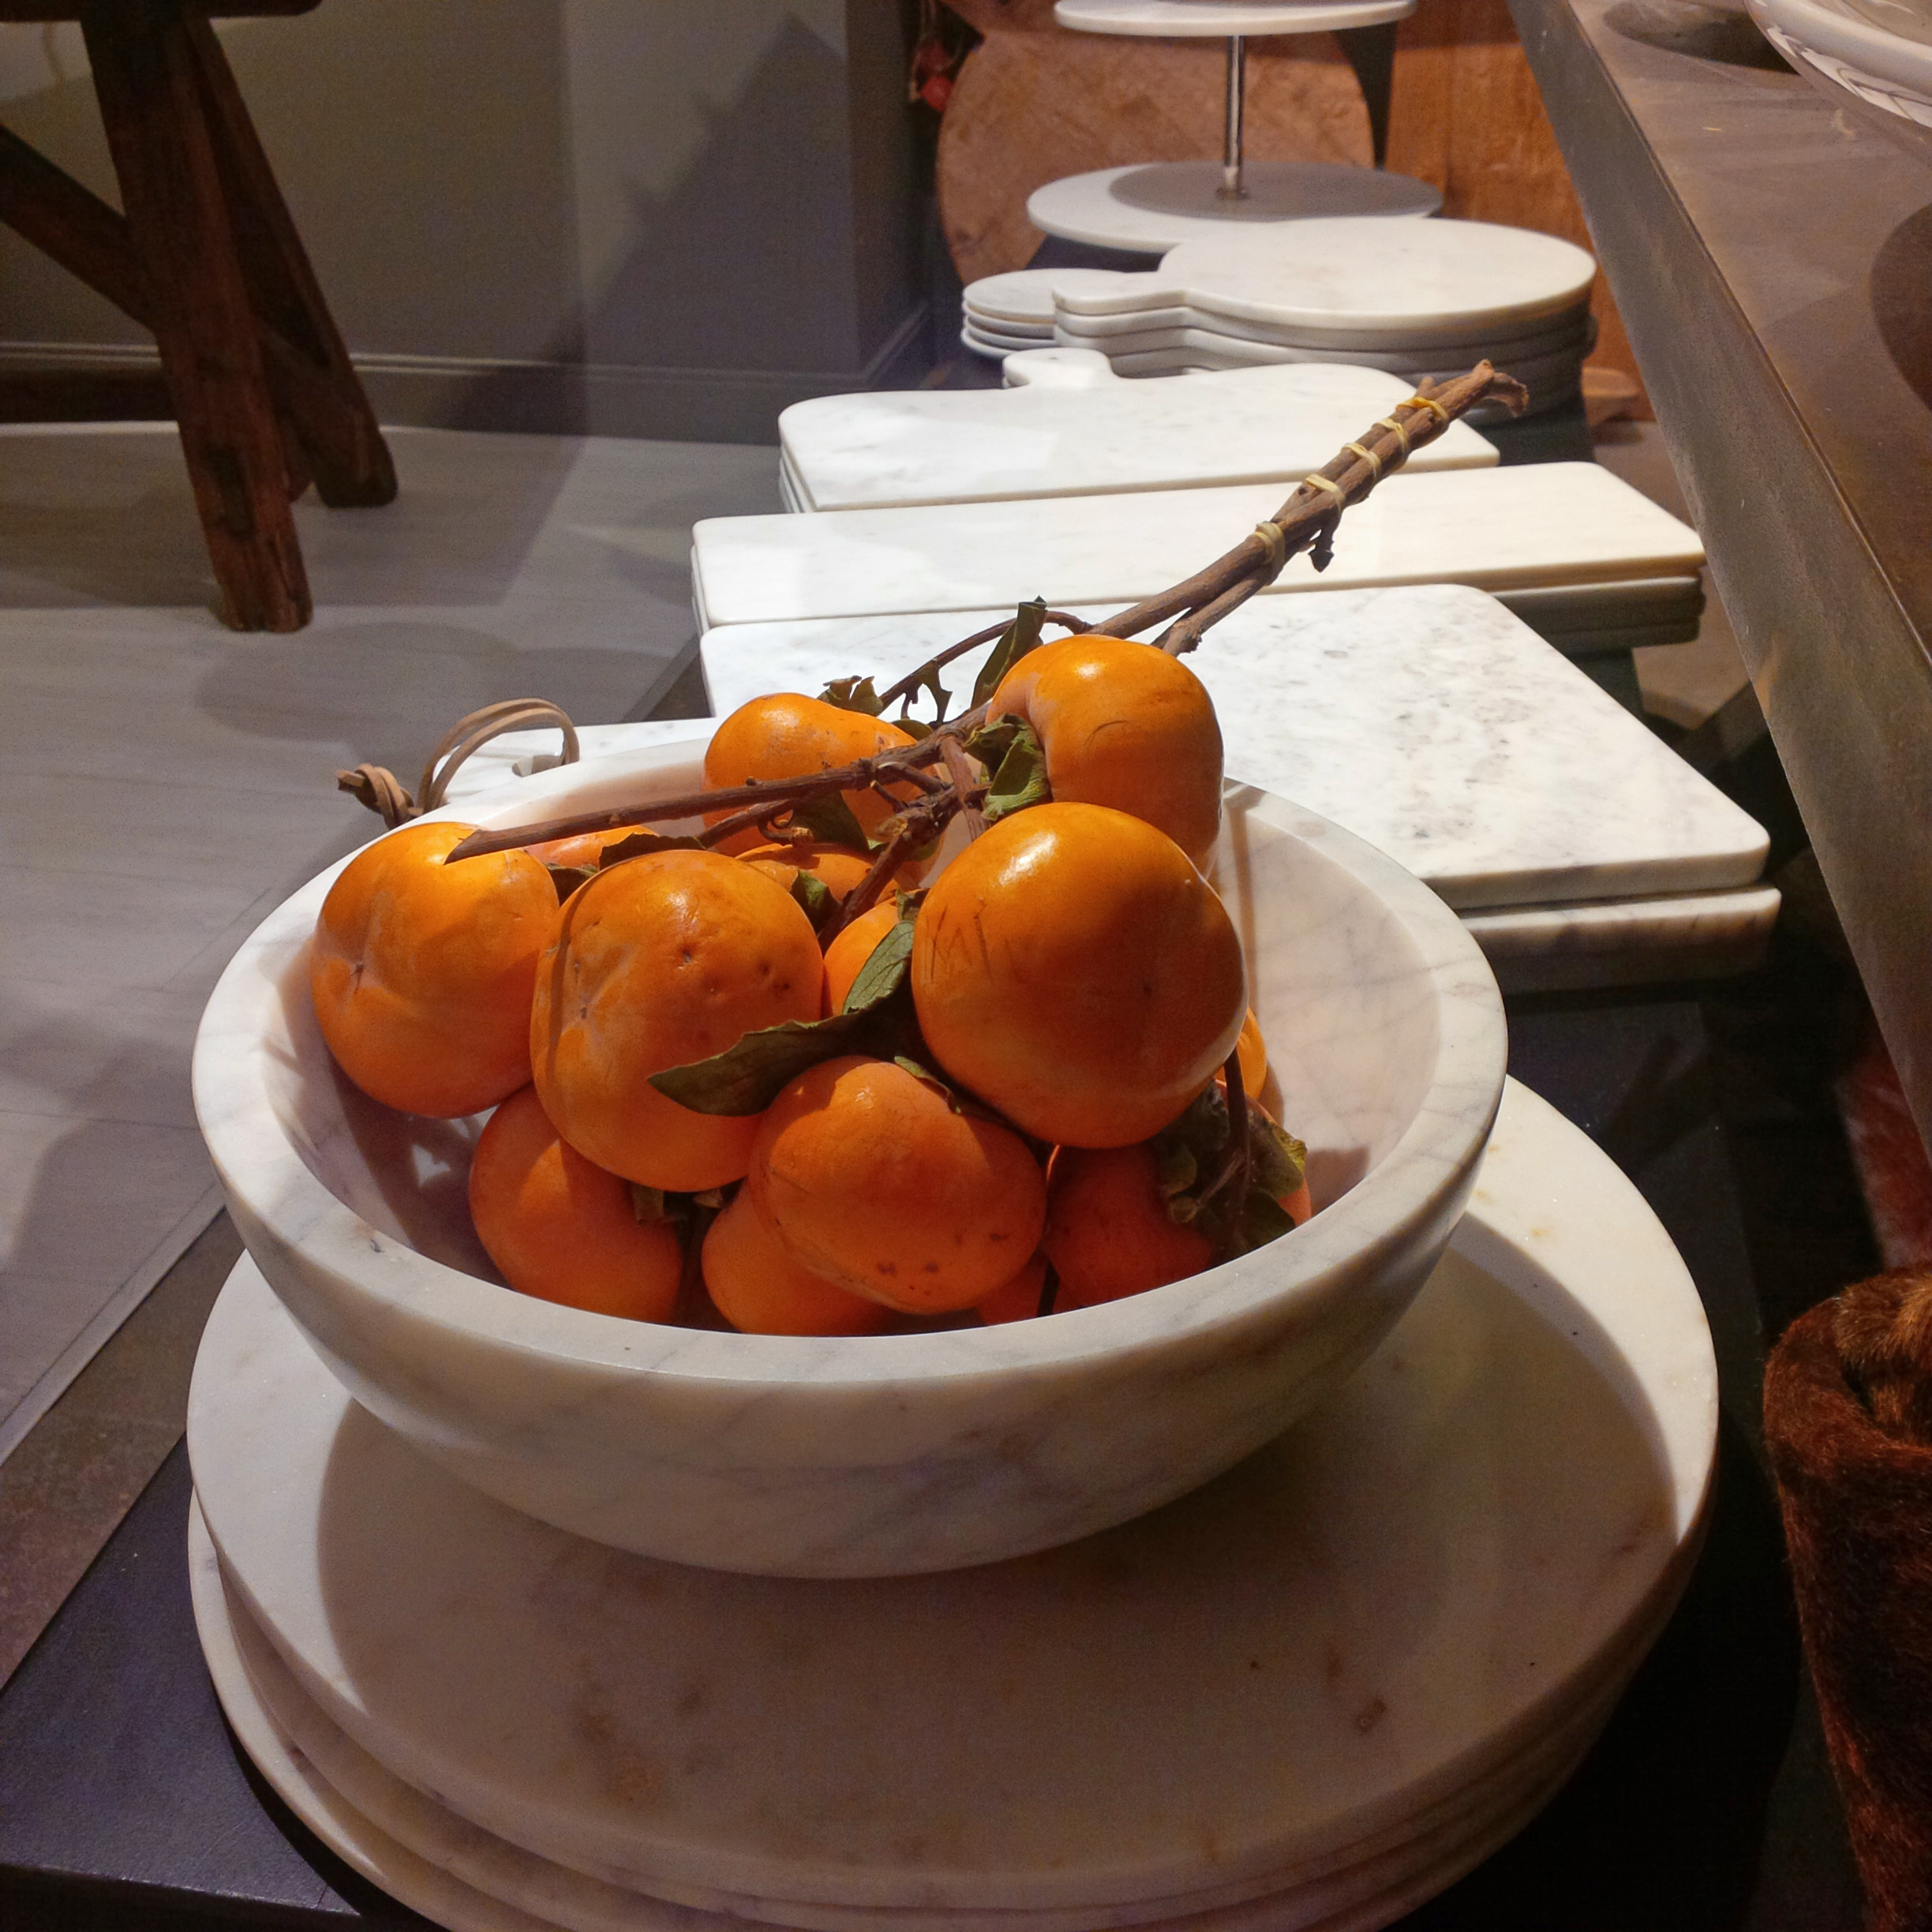 Marble platters with orange persimmons are a simple chic Holiday table setting.